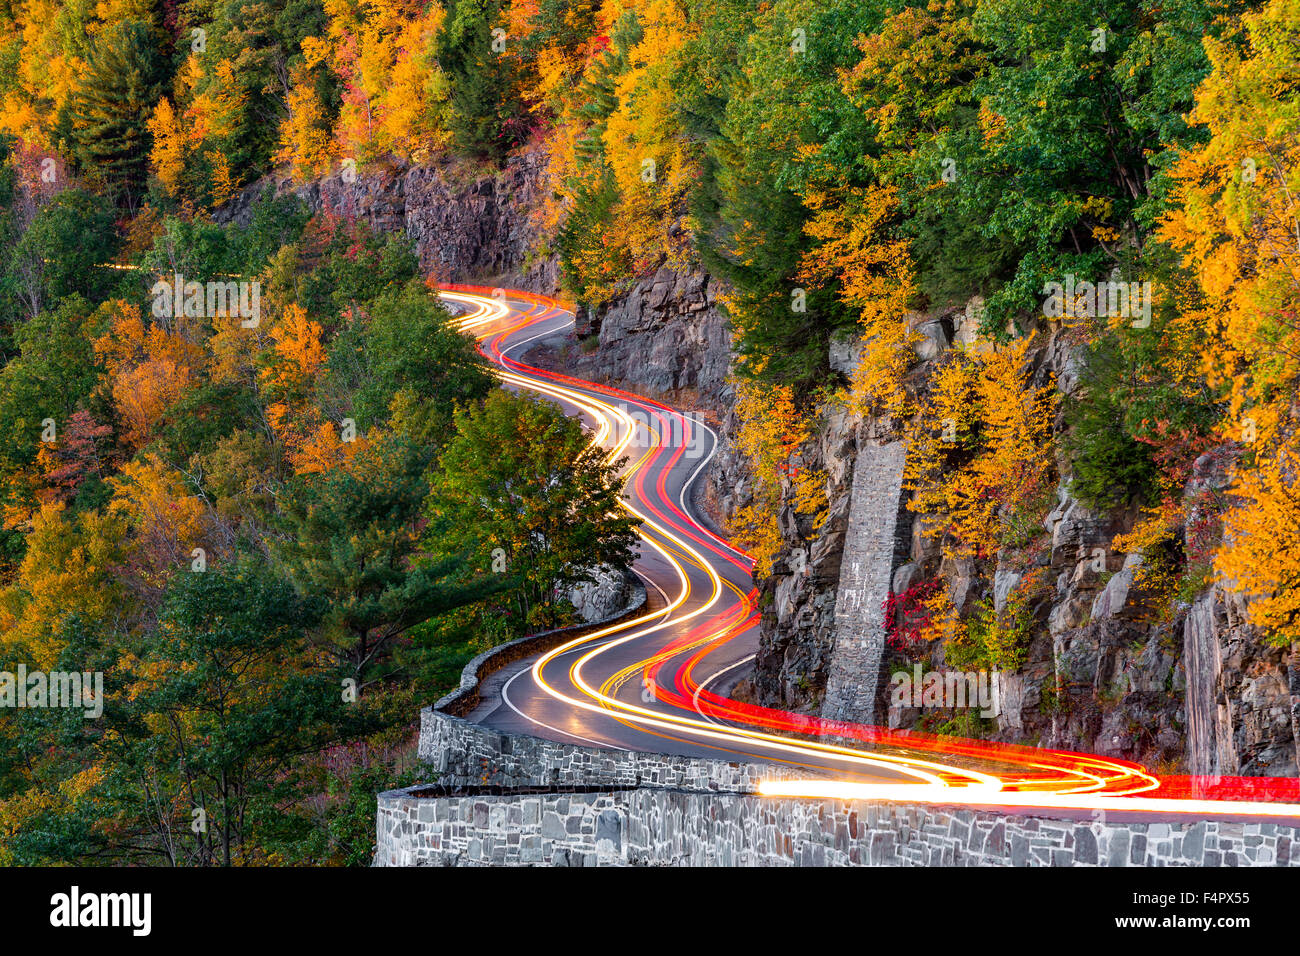 Traffic light trails on Hawk's Nest winding road (route 97) in Upstate New York, on an autumn evening. - Stock Image